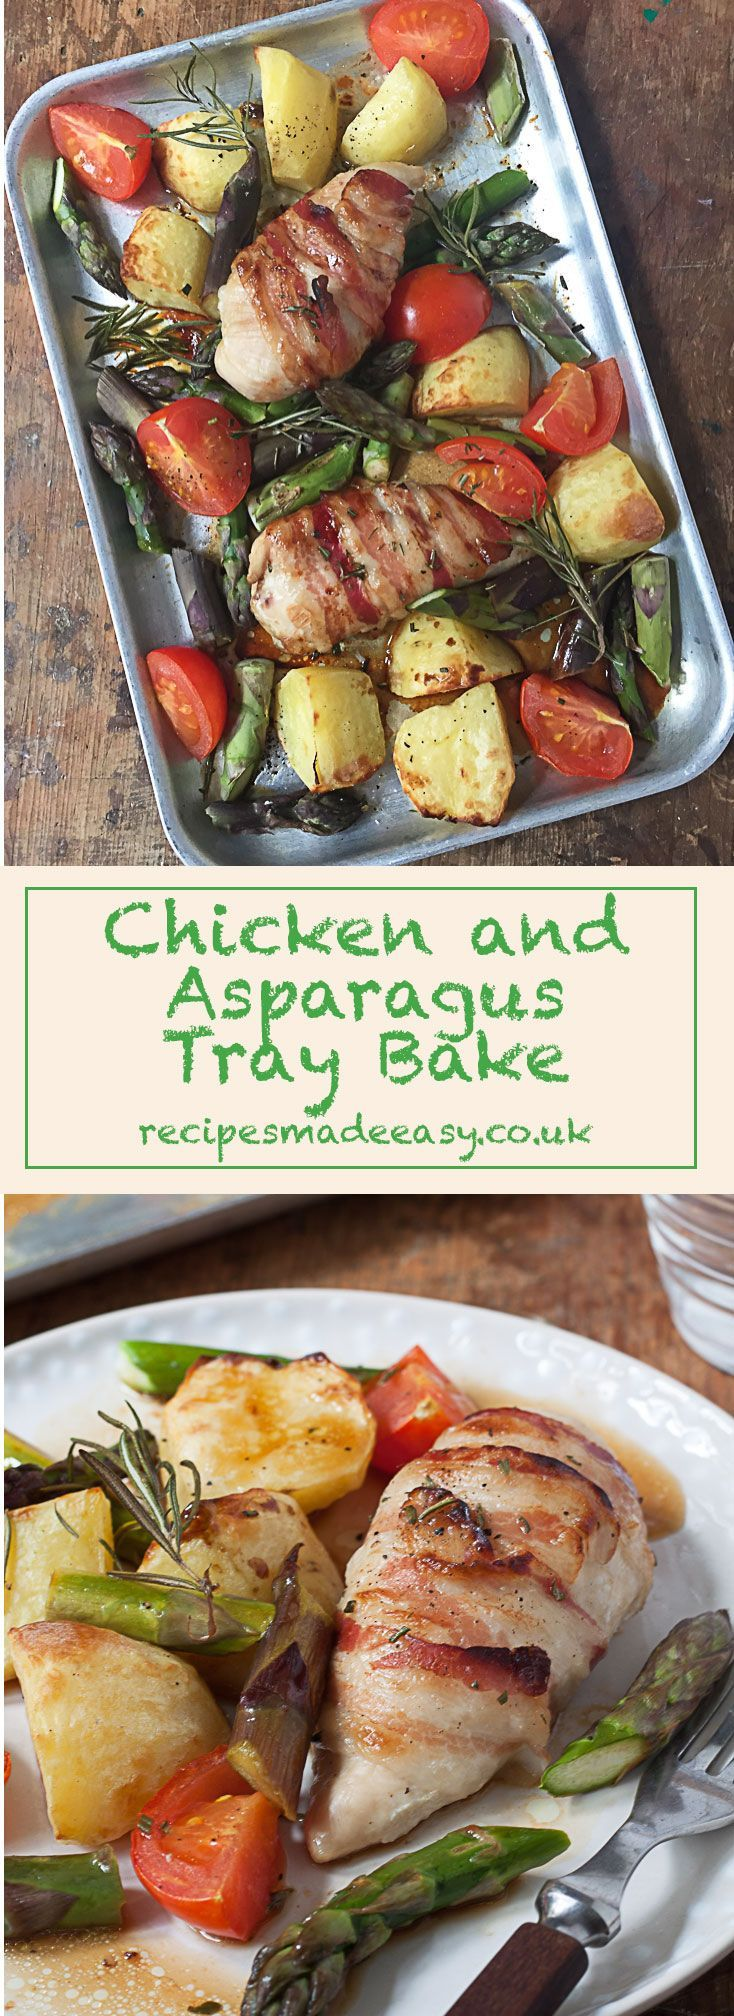 Quick, Easy and Delicious -Chicken and Asparagus Tray Bake by Recipes Made Easy. Perfect for a mid week meal and entertaining. via @jacdotbee